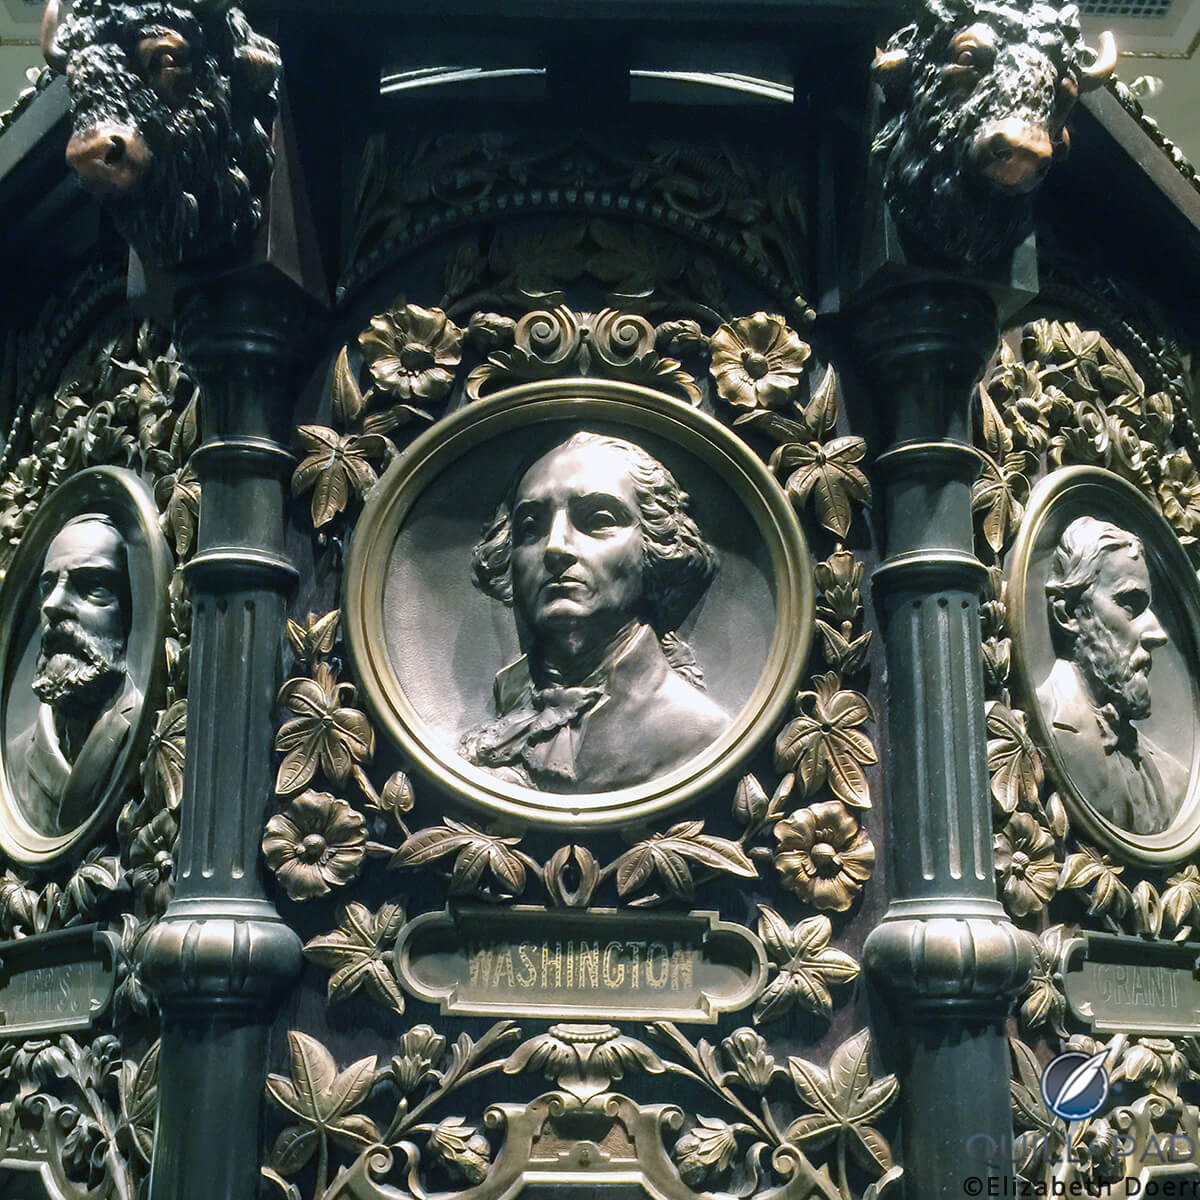 Bas-relief bust of George Washington on the clock in the Waldorf Astoria hotel, New York